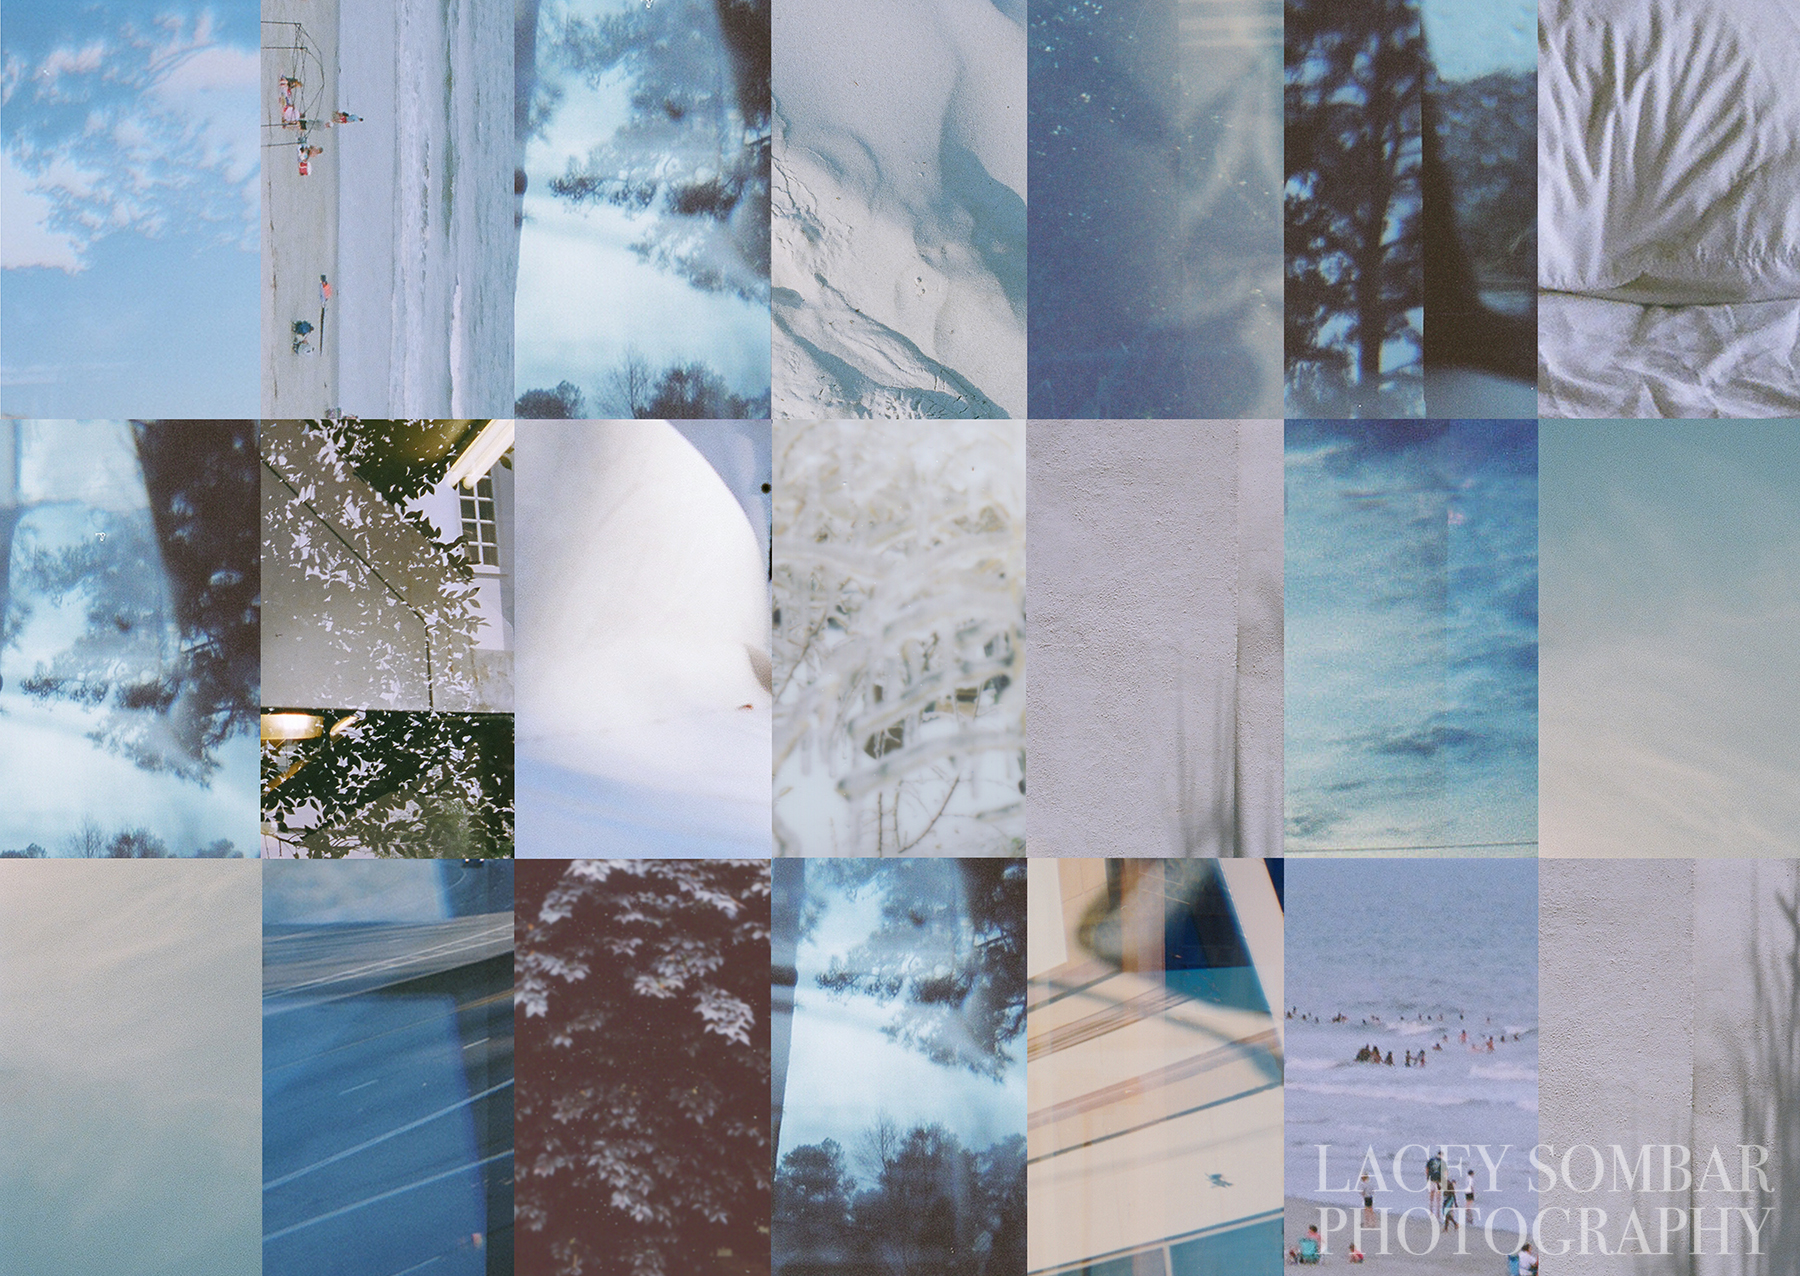 Lacey Sombar Photo Quilt 1